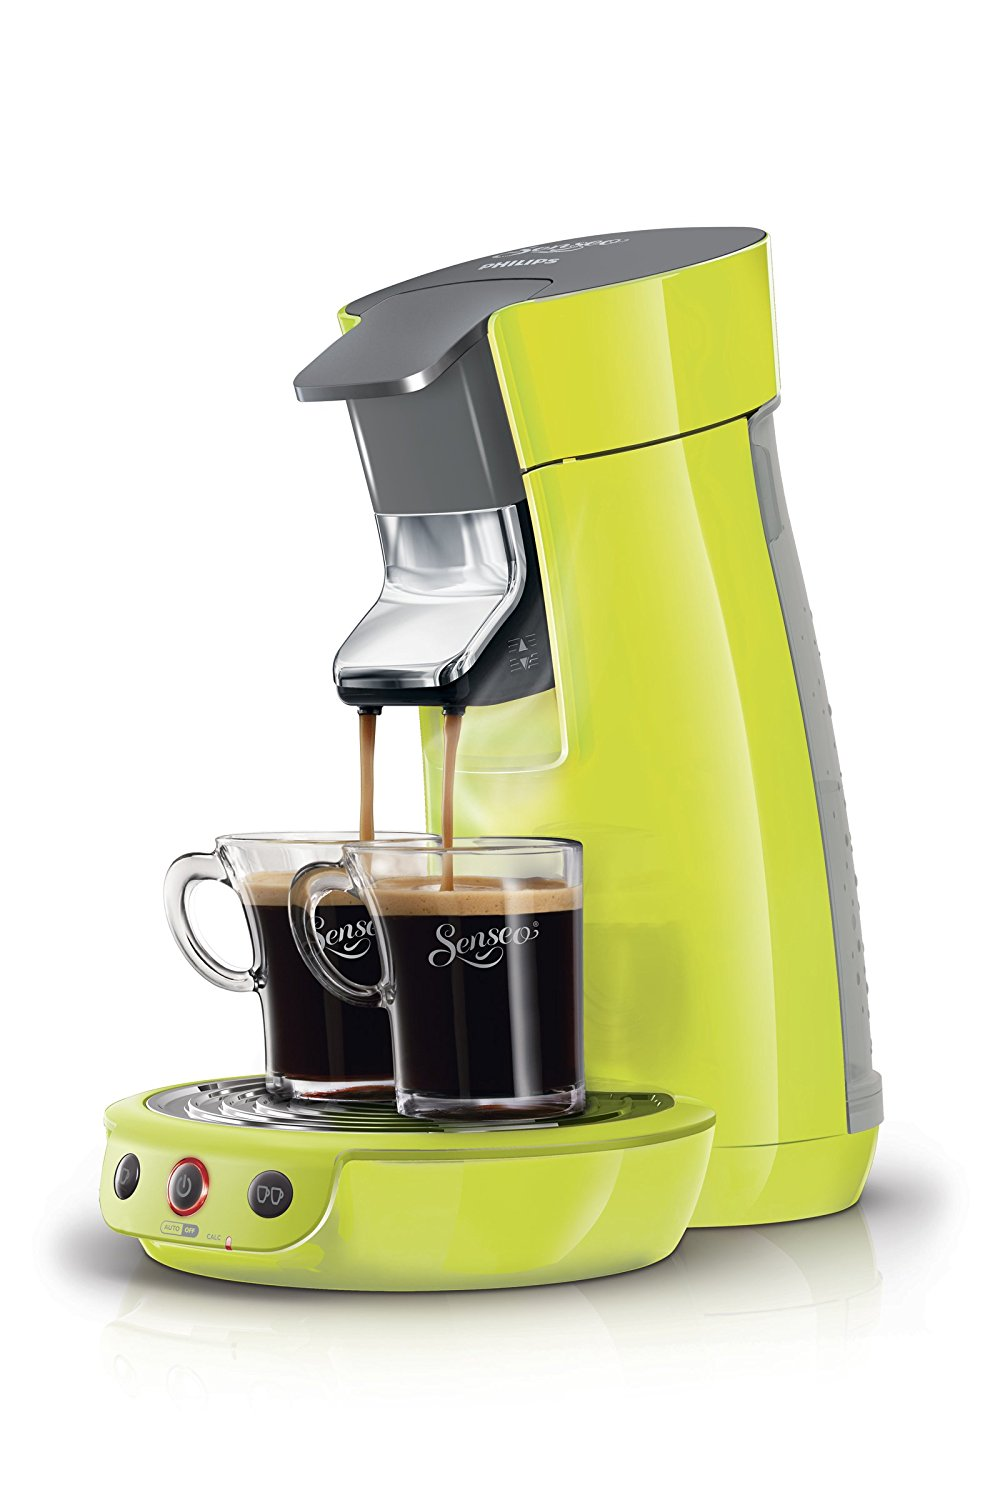 senseo hd7825 10 viva caf coffee pod machine 1450w sizzling lime genuine new ebay. Black Bedroom Furniture Sets. Home Design Ideas